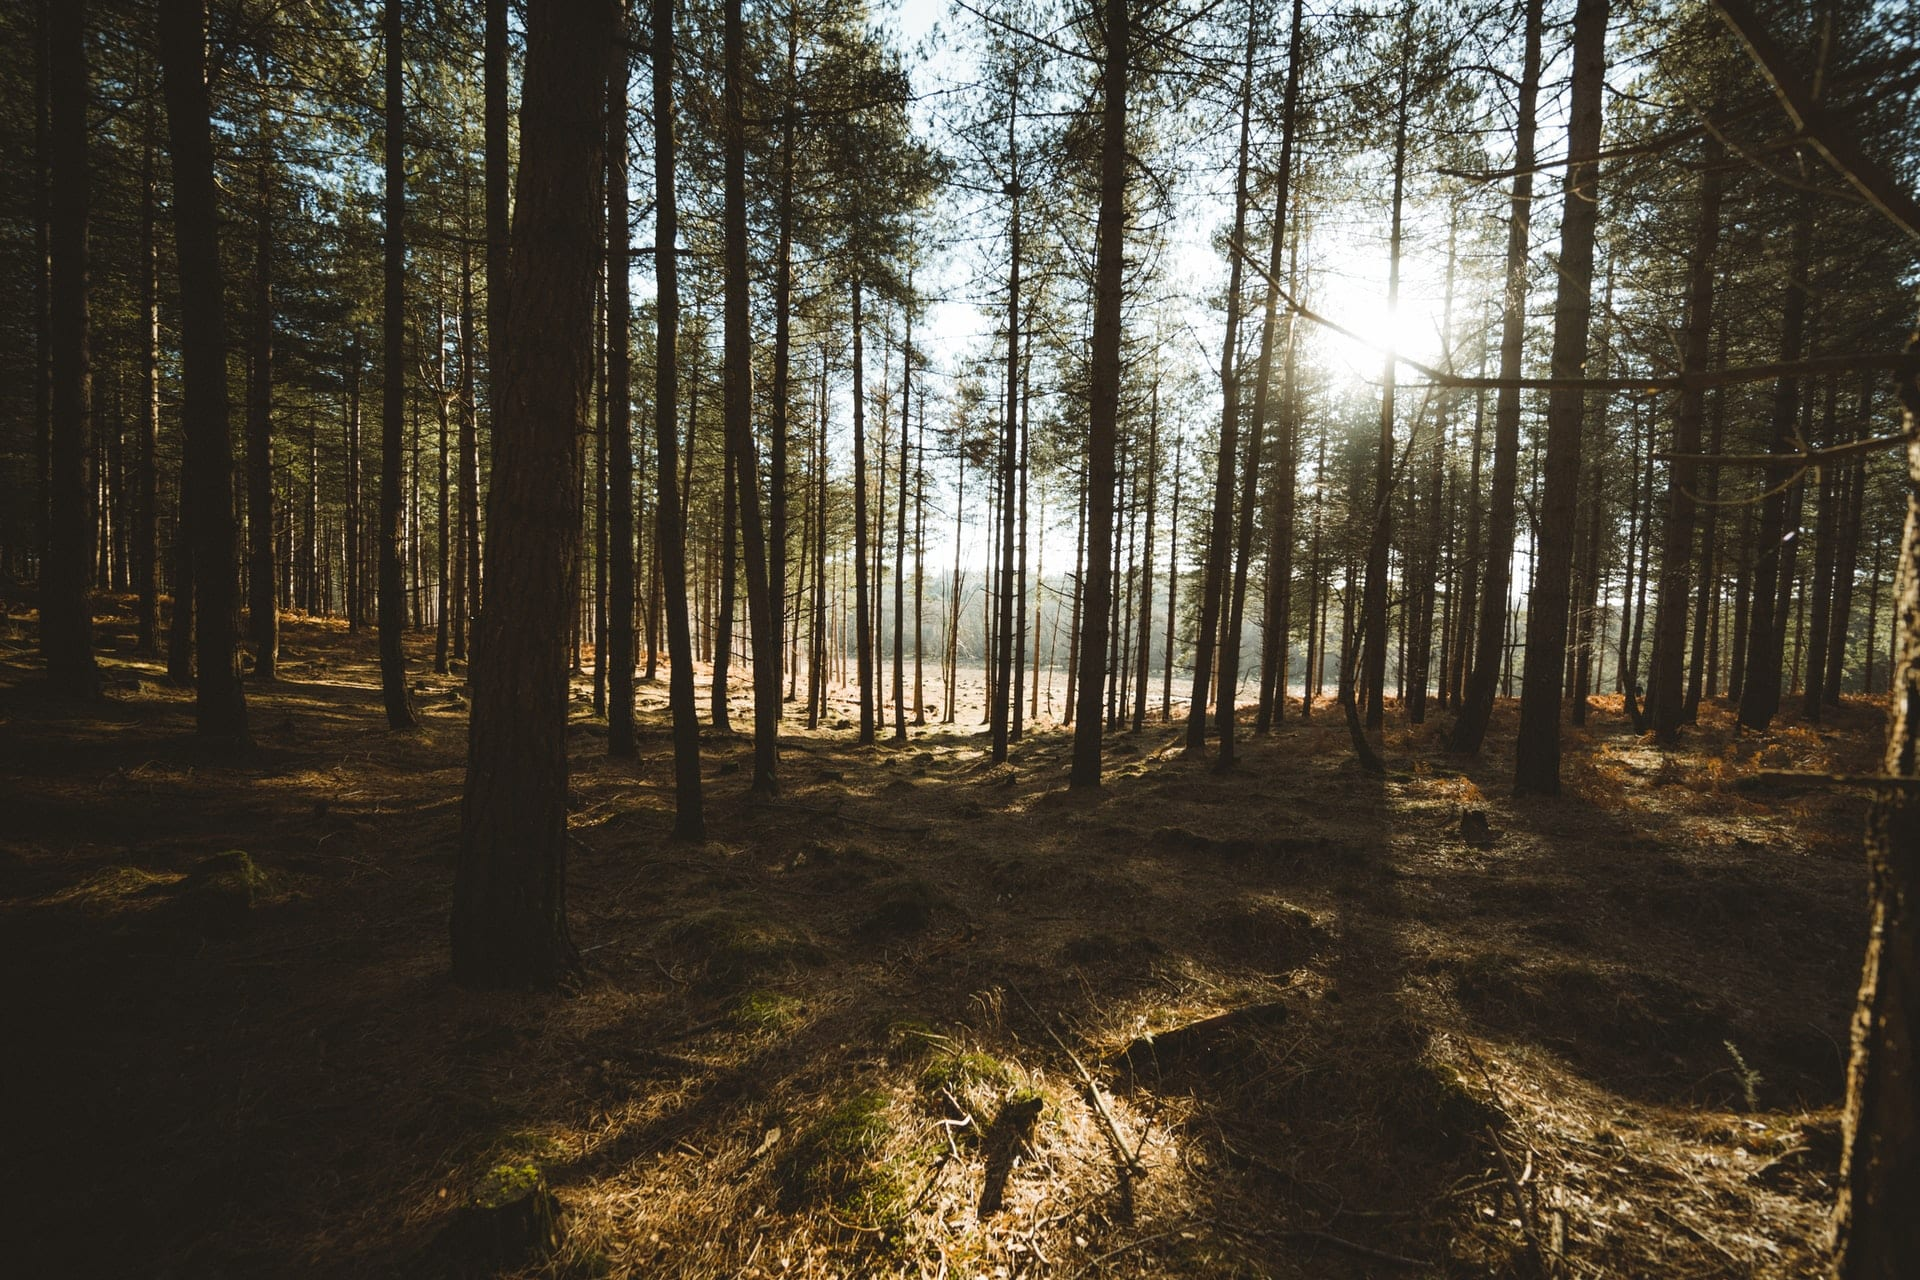 sunlight-pouring-into-forest-new-forest-national-park-england